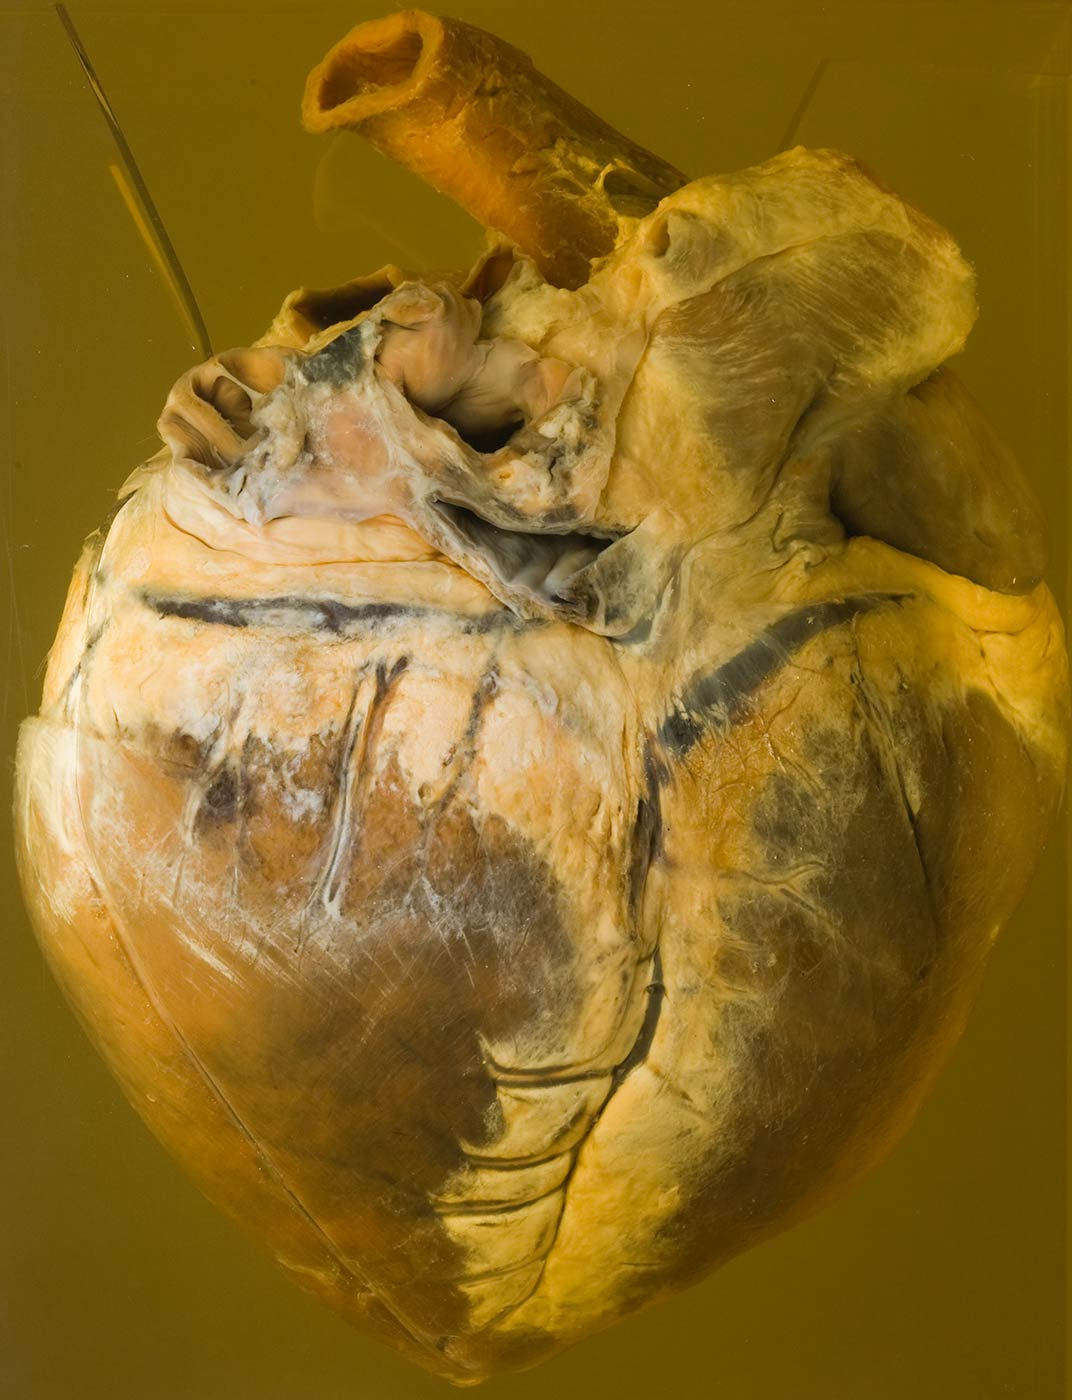 A horse's heart in a container filled with liquid - click to view larger image